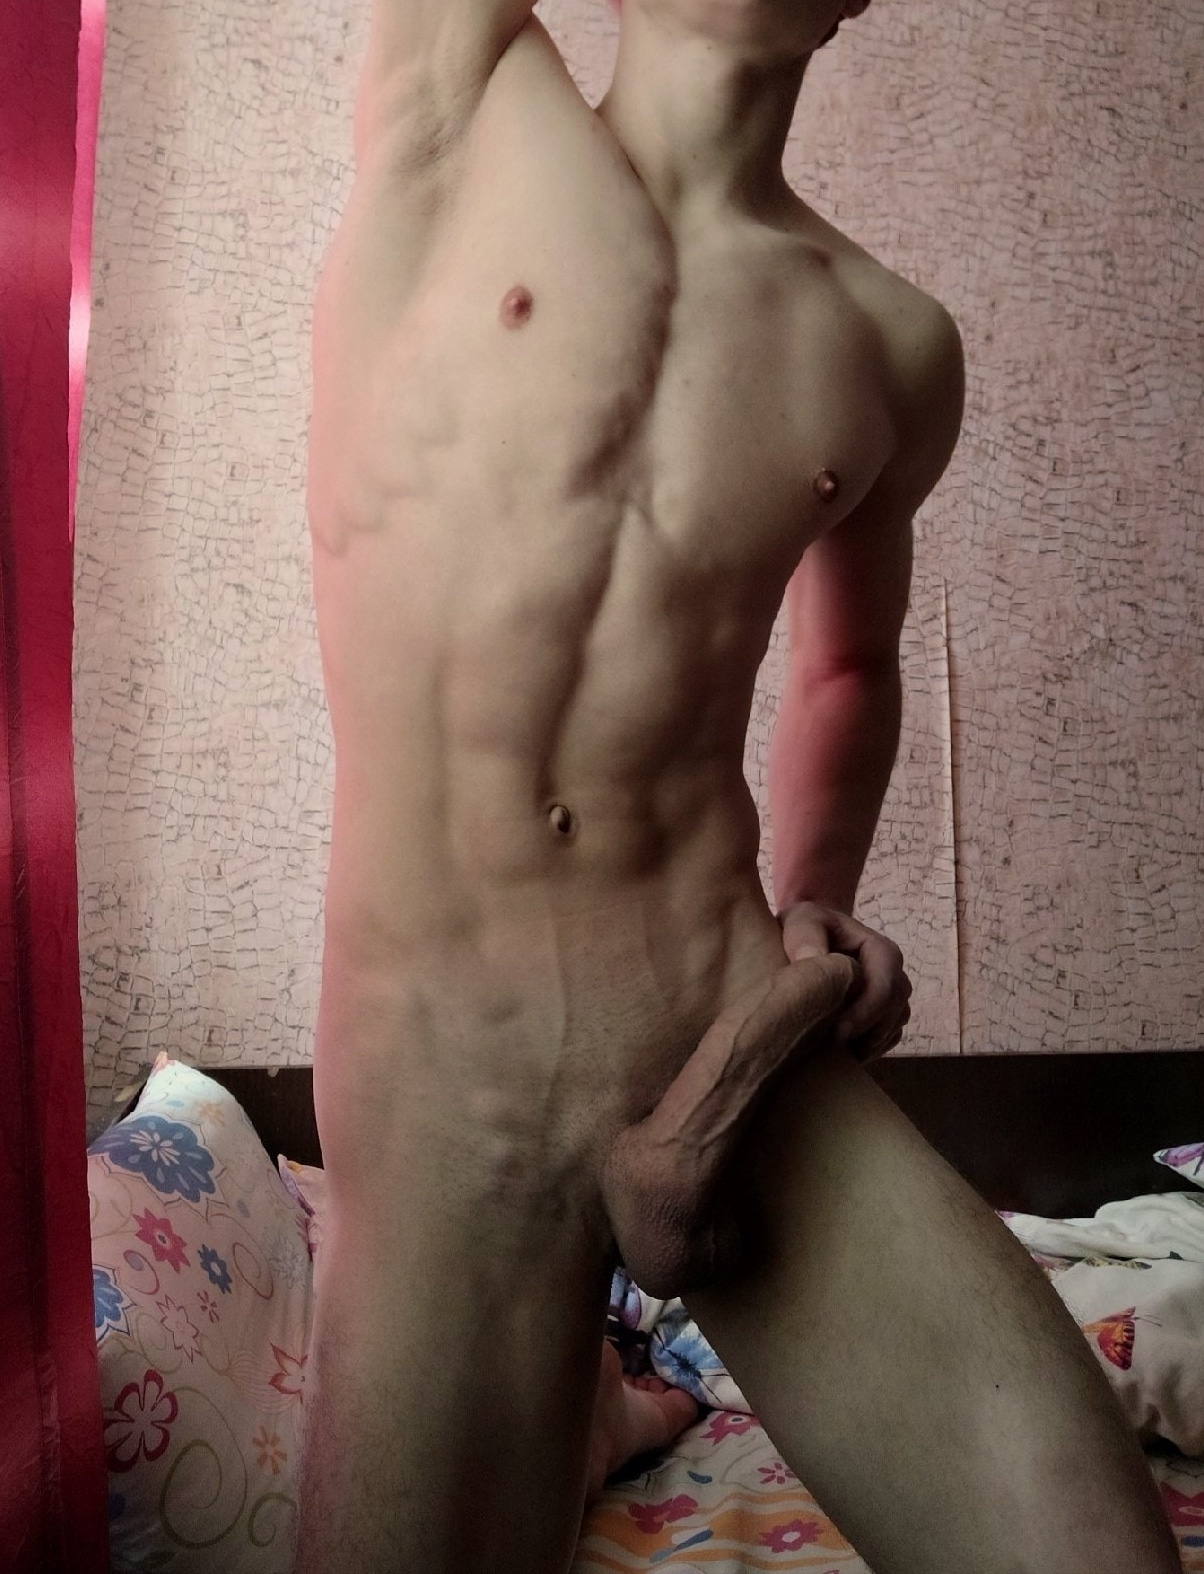 Hairless body and cock